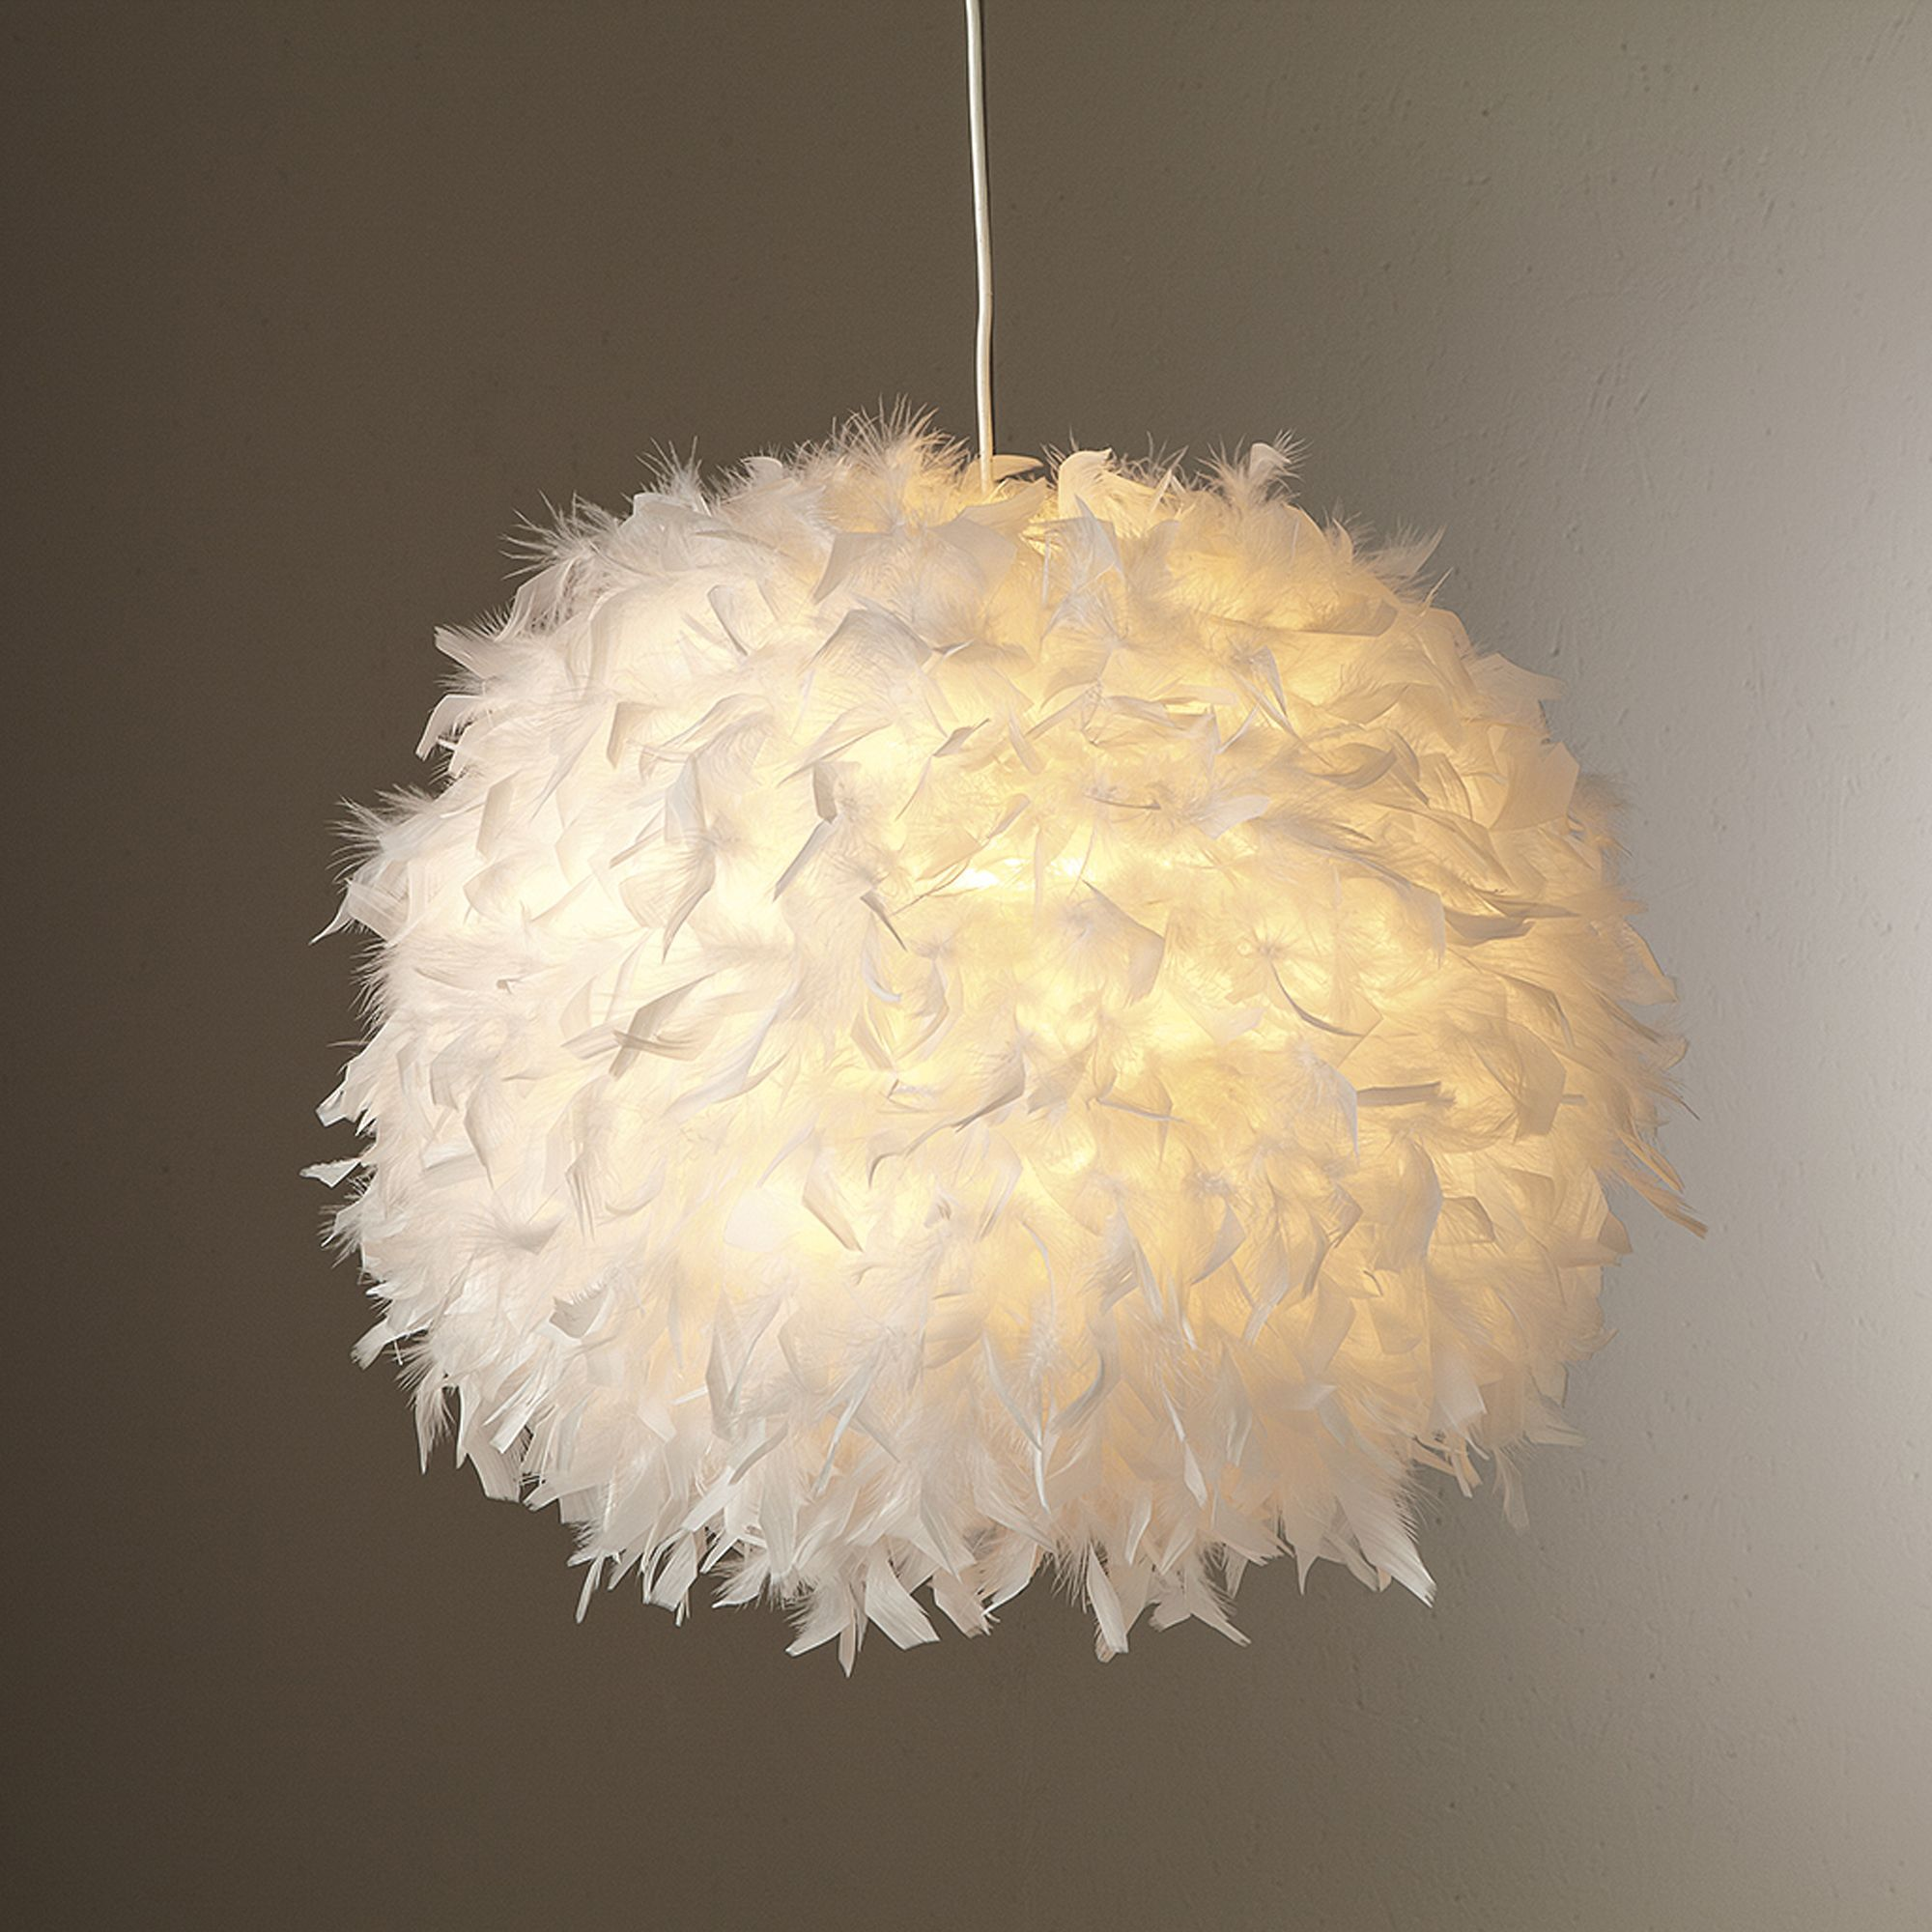 Suspension boule en plumes non lectrifi blanc kokot for Suspension luminaire chambre